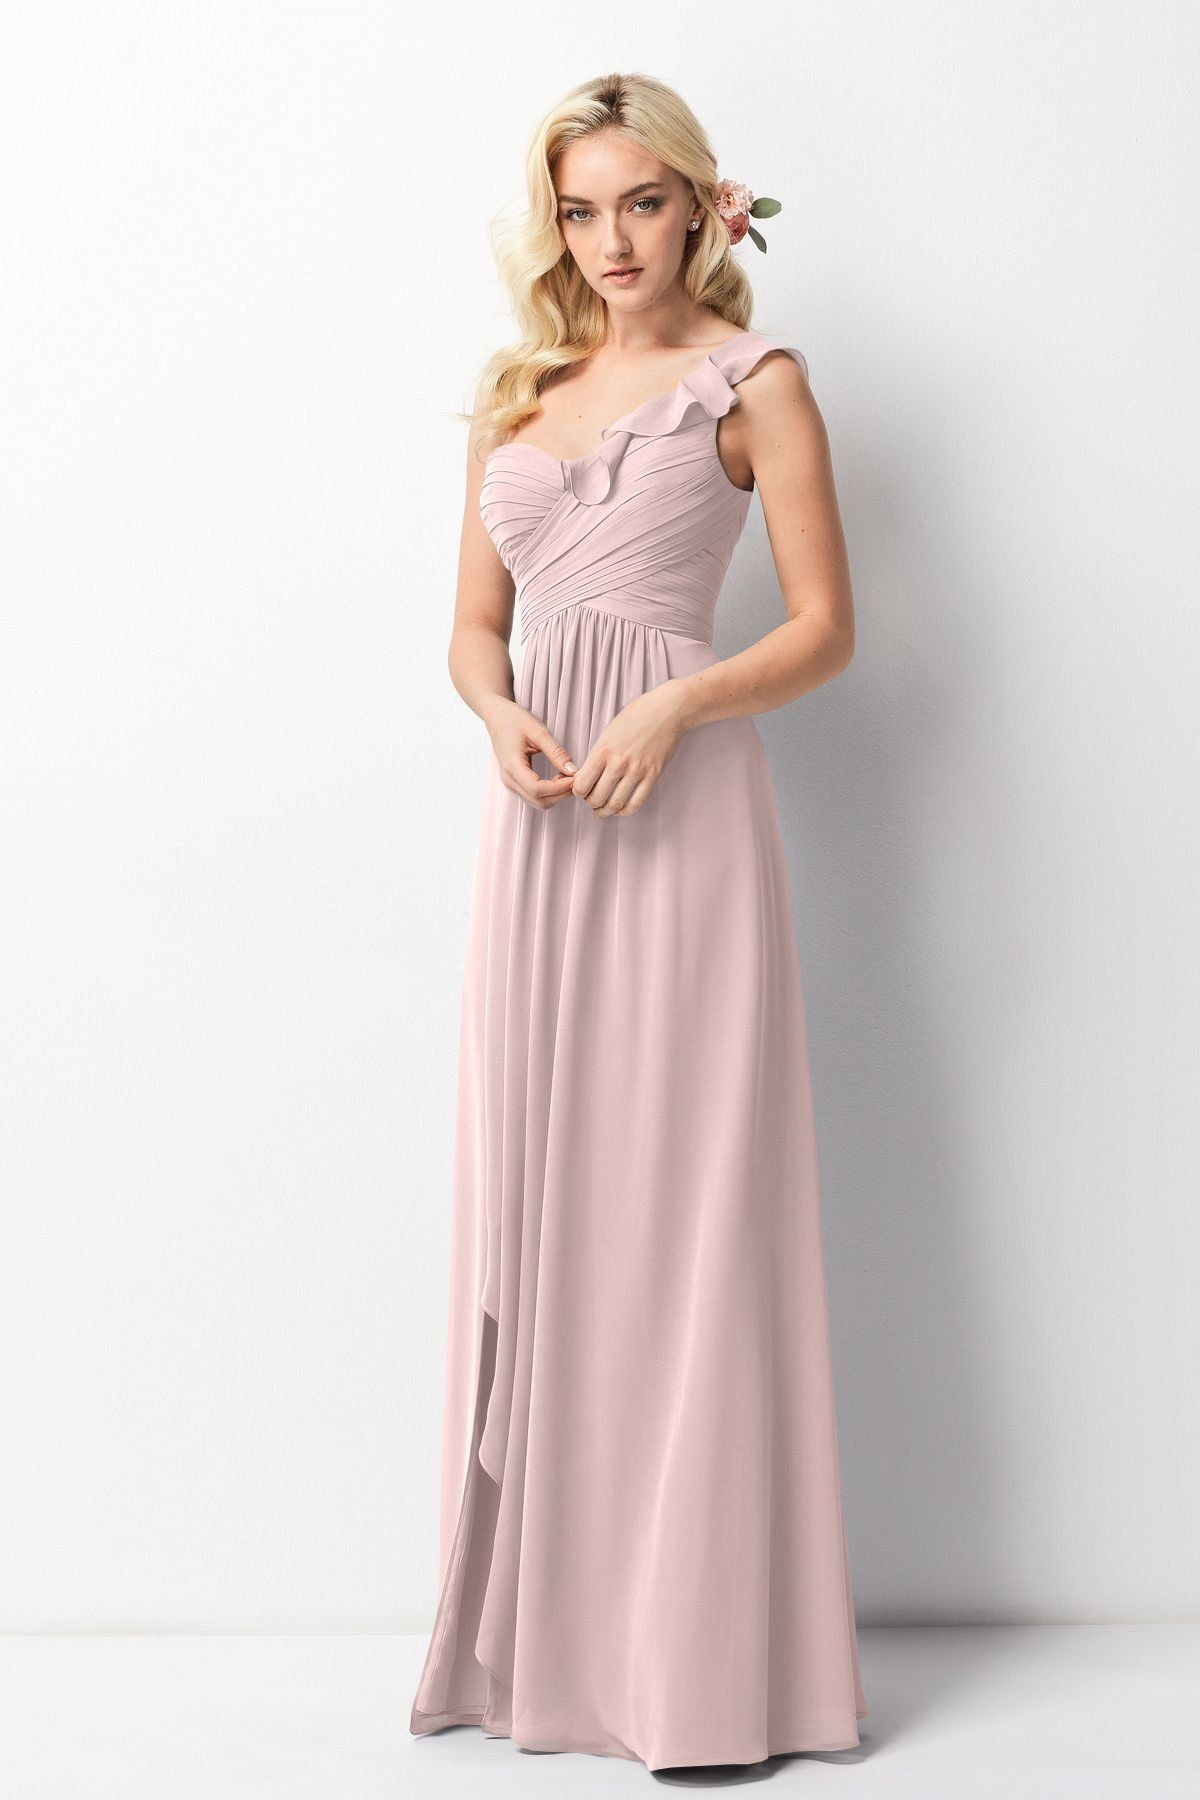 WToo 201 from Nordstroms in Primrose or Chateau Rose? | Bridesmaids ...